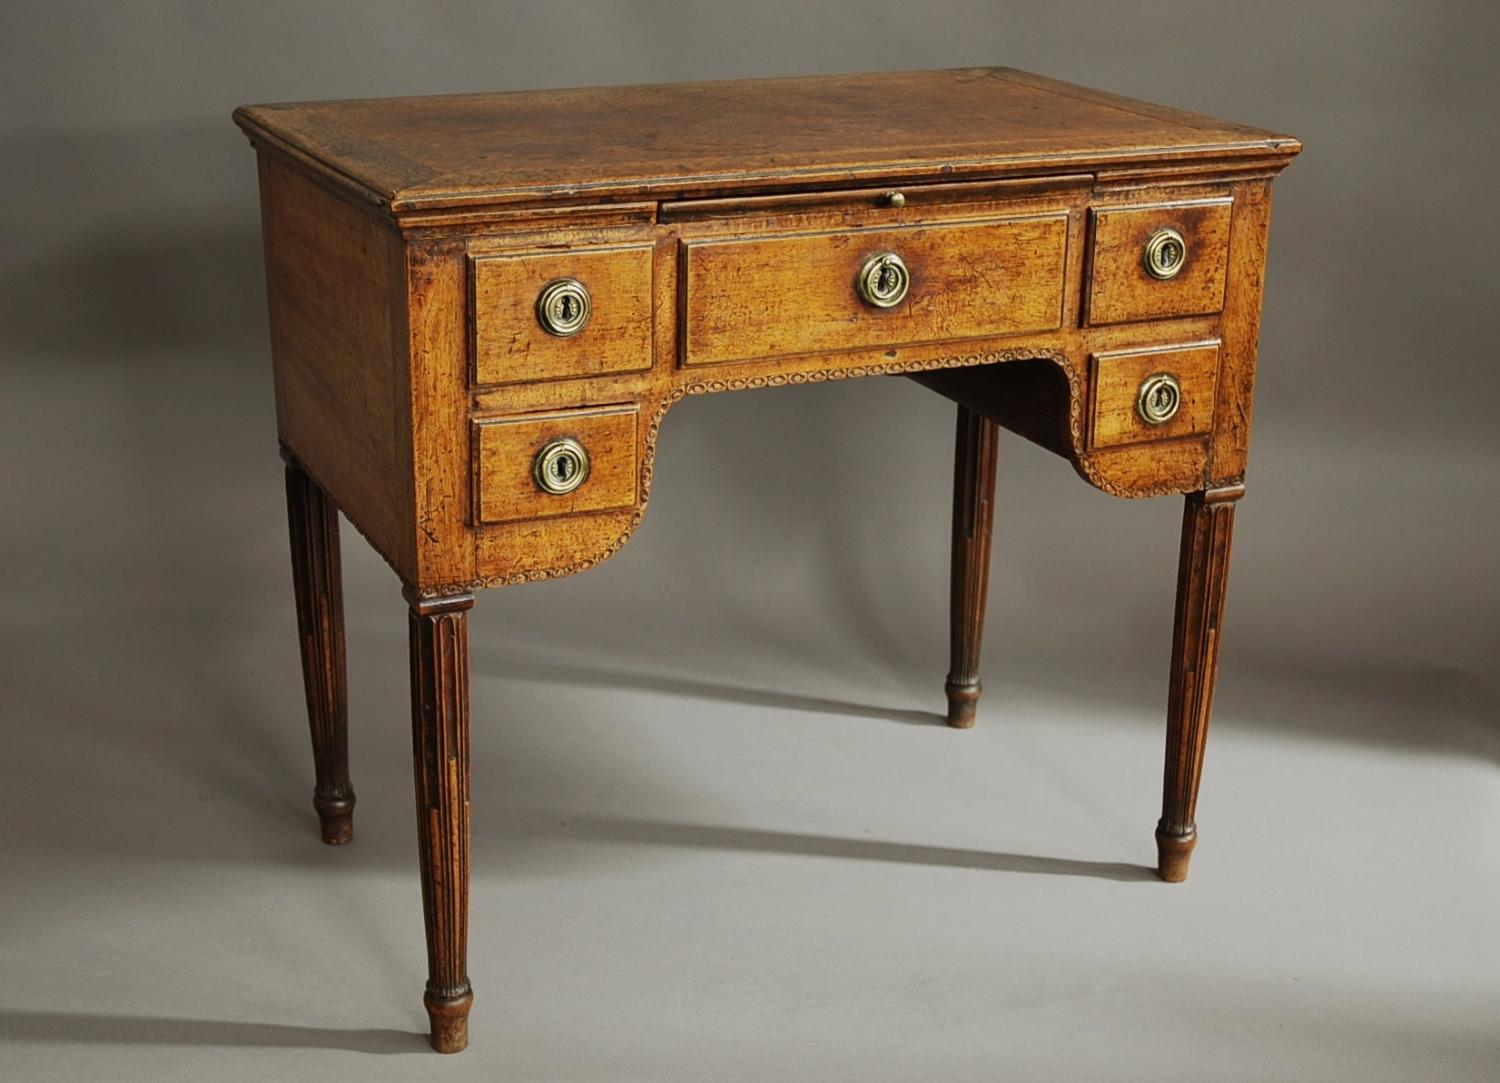 18th century Continental walnut desk/table